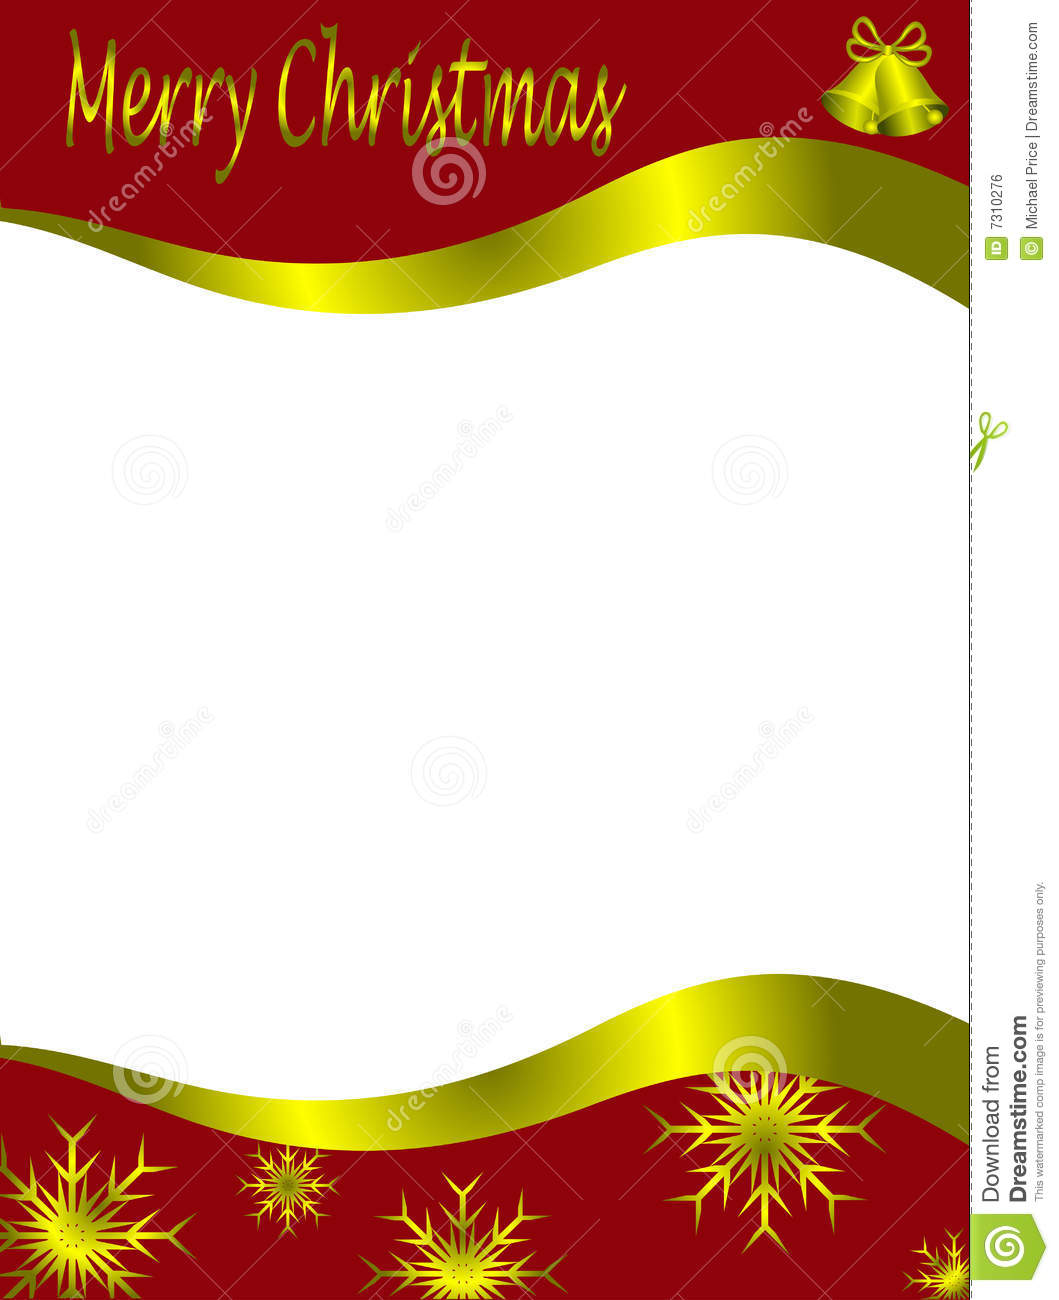 Red Christmas Letter Template Royalty Free Stock Image - Image ...